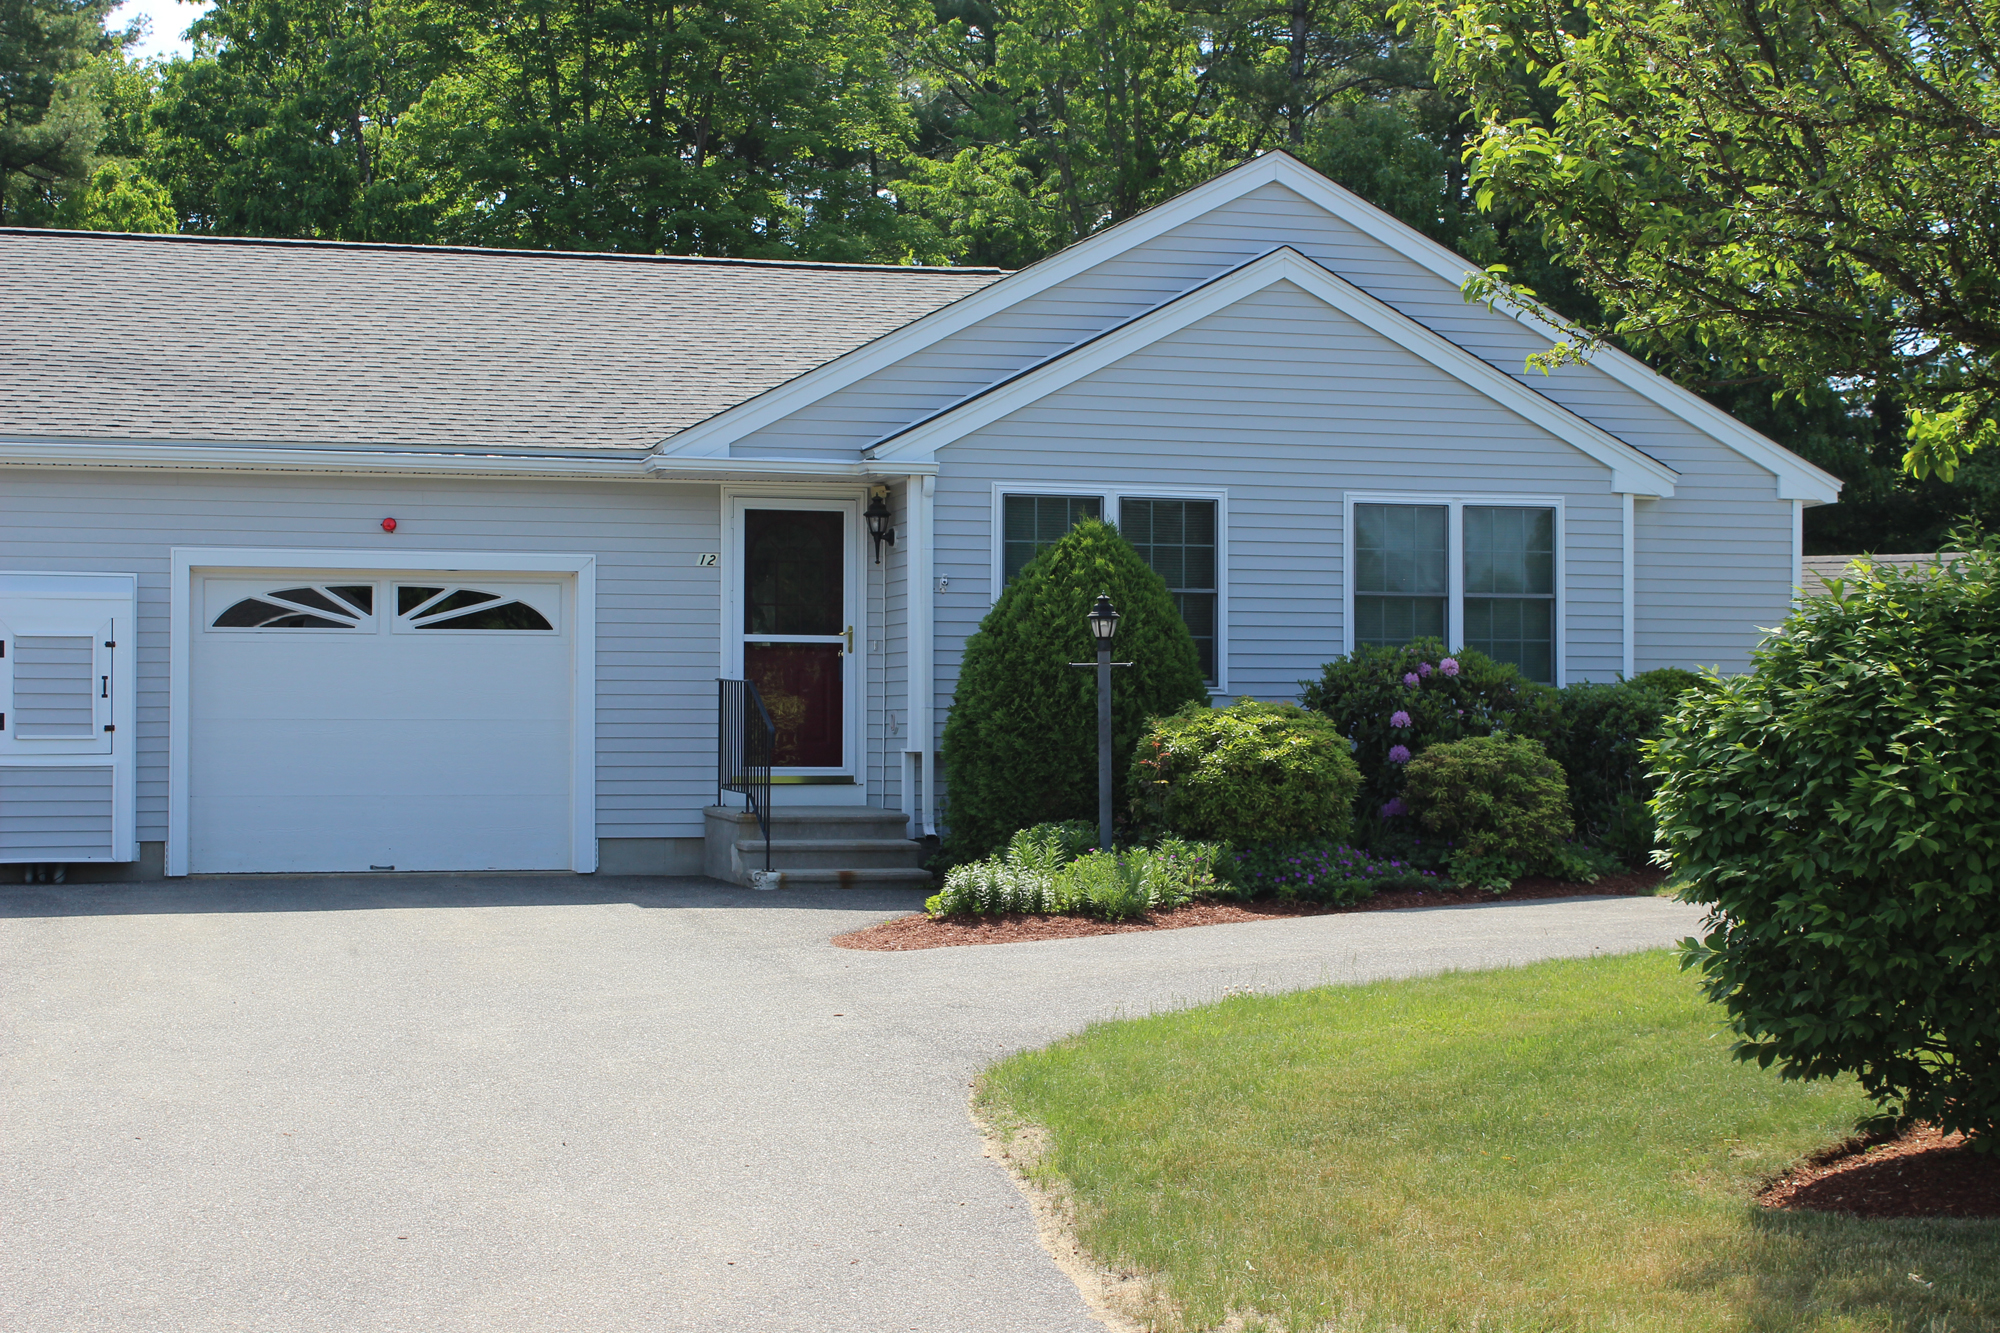 Condominium for Sale at 12 Rainbow 12, Londonderry 12 Rainbow Dr 12 Londonderry, New Hampshire, 03053 United States